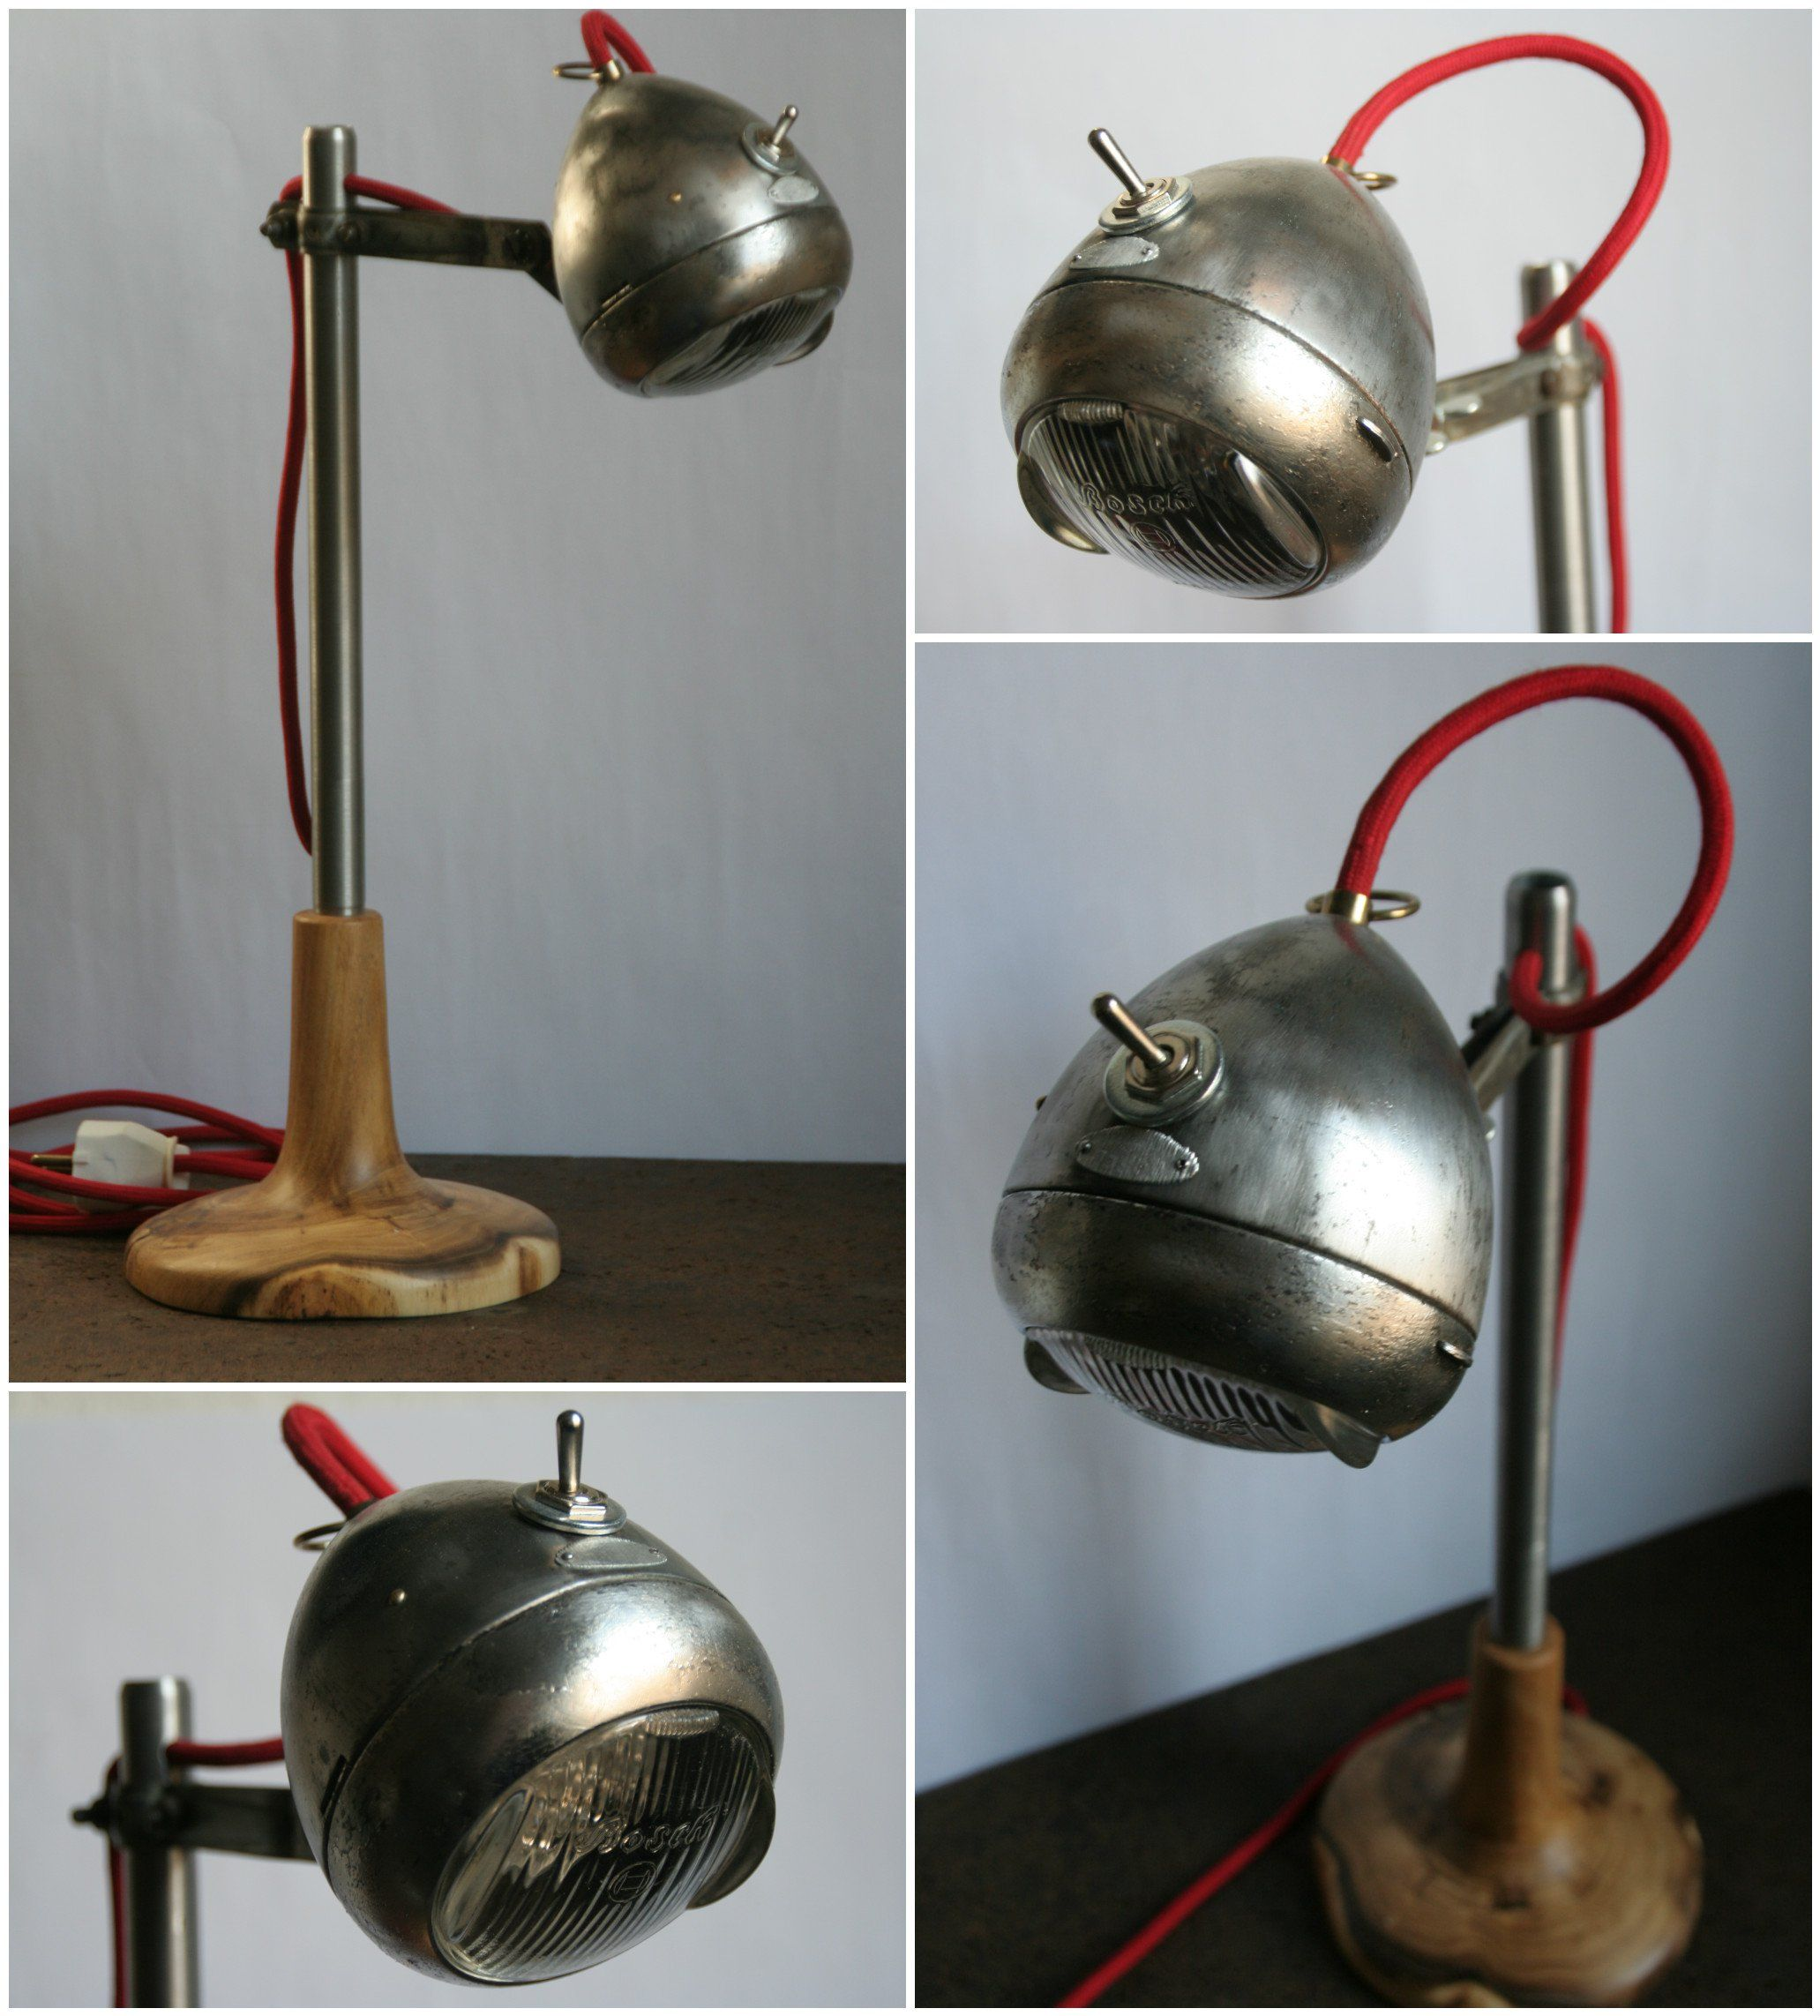 Upcycled Lamps And Lighting Ideas: #BicycleLamp, #Bike, #DeskLamp, #Industrial, #Lamp, #Led